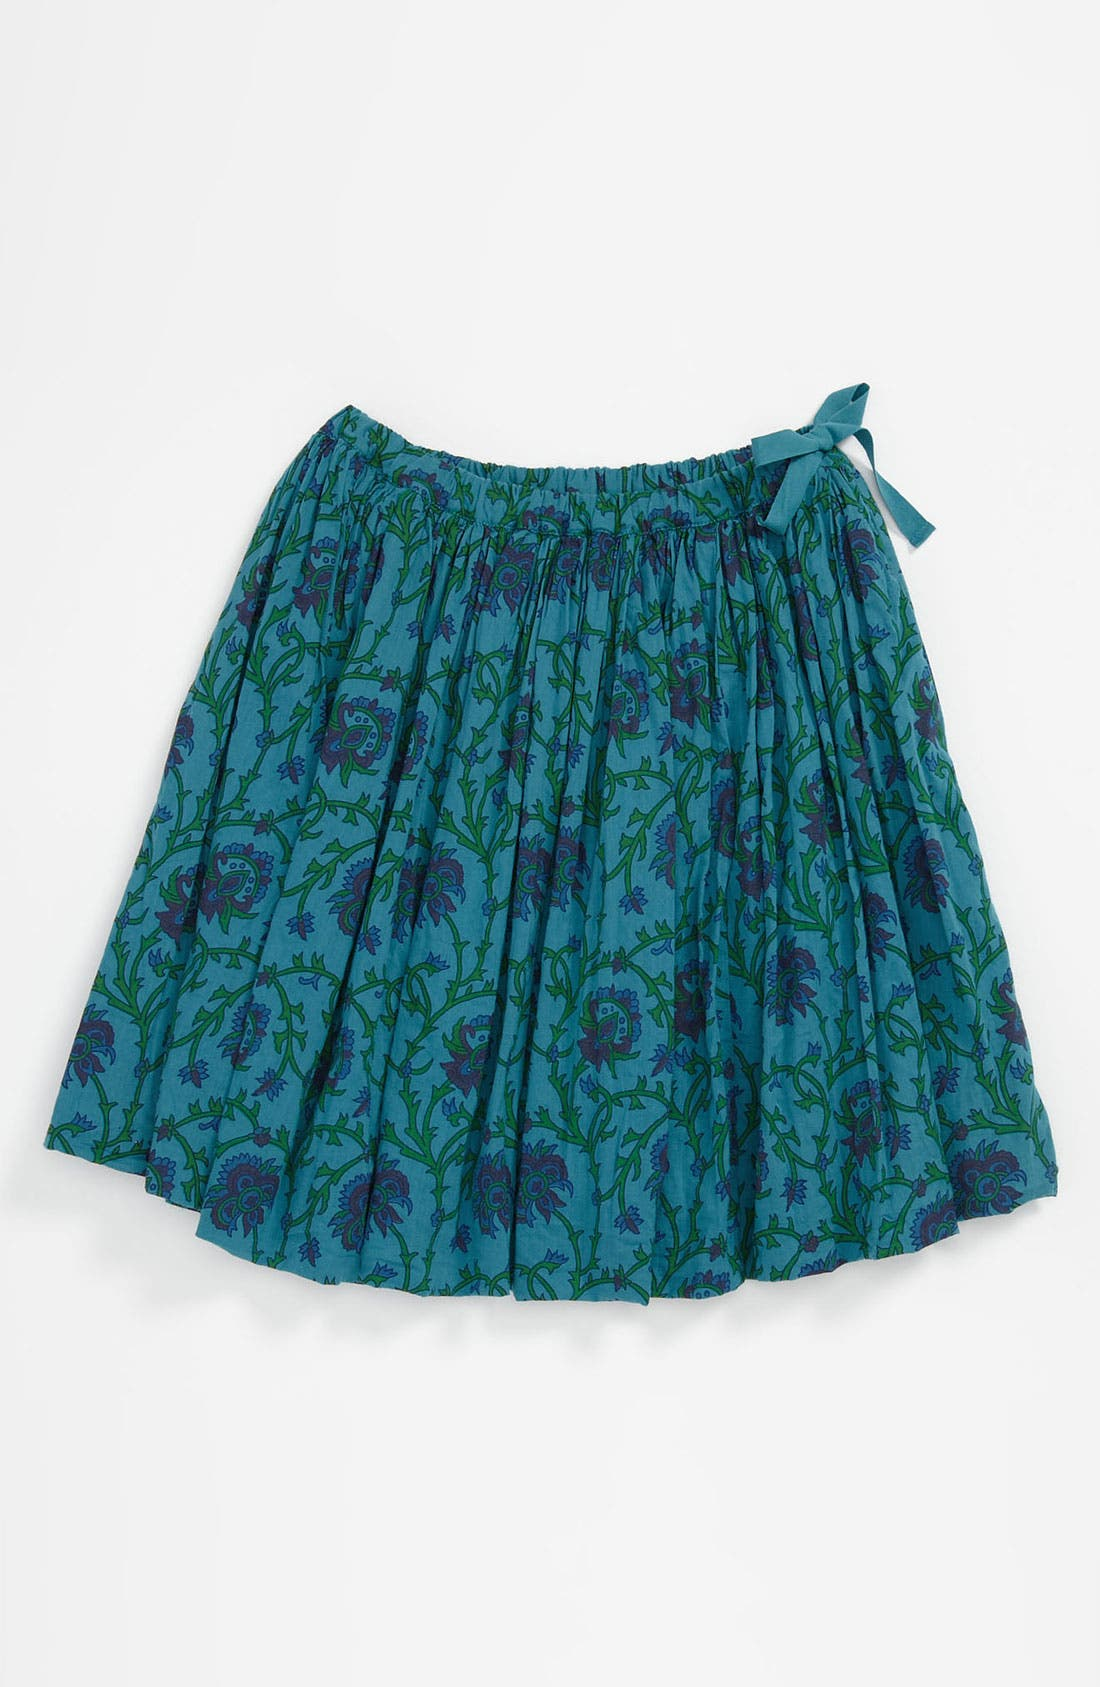 Main Image - Peek 'Eve' Skirt (Toddler, Little Girls & Big Girls)